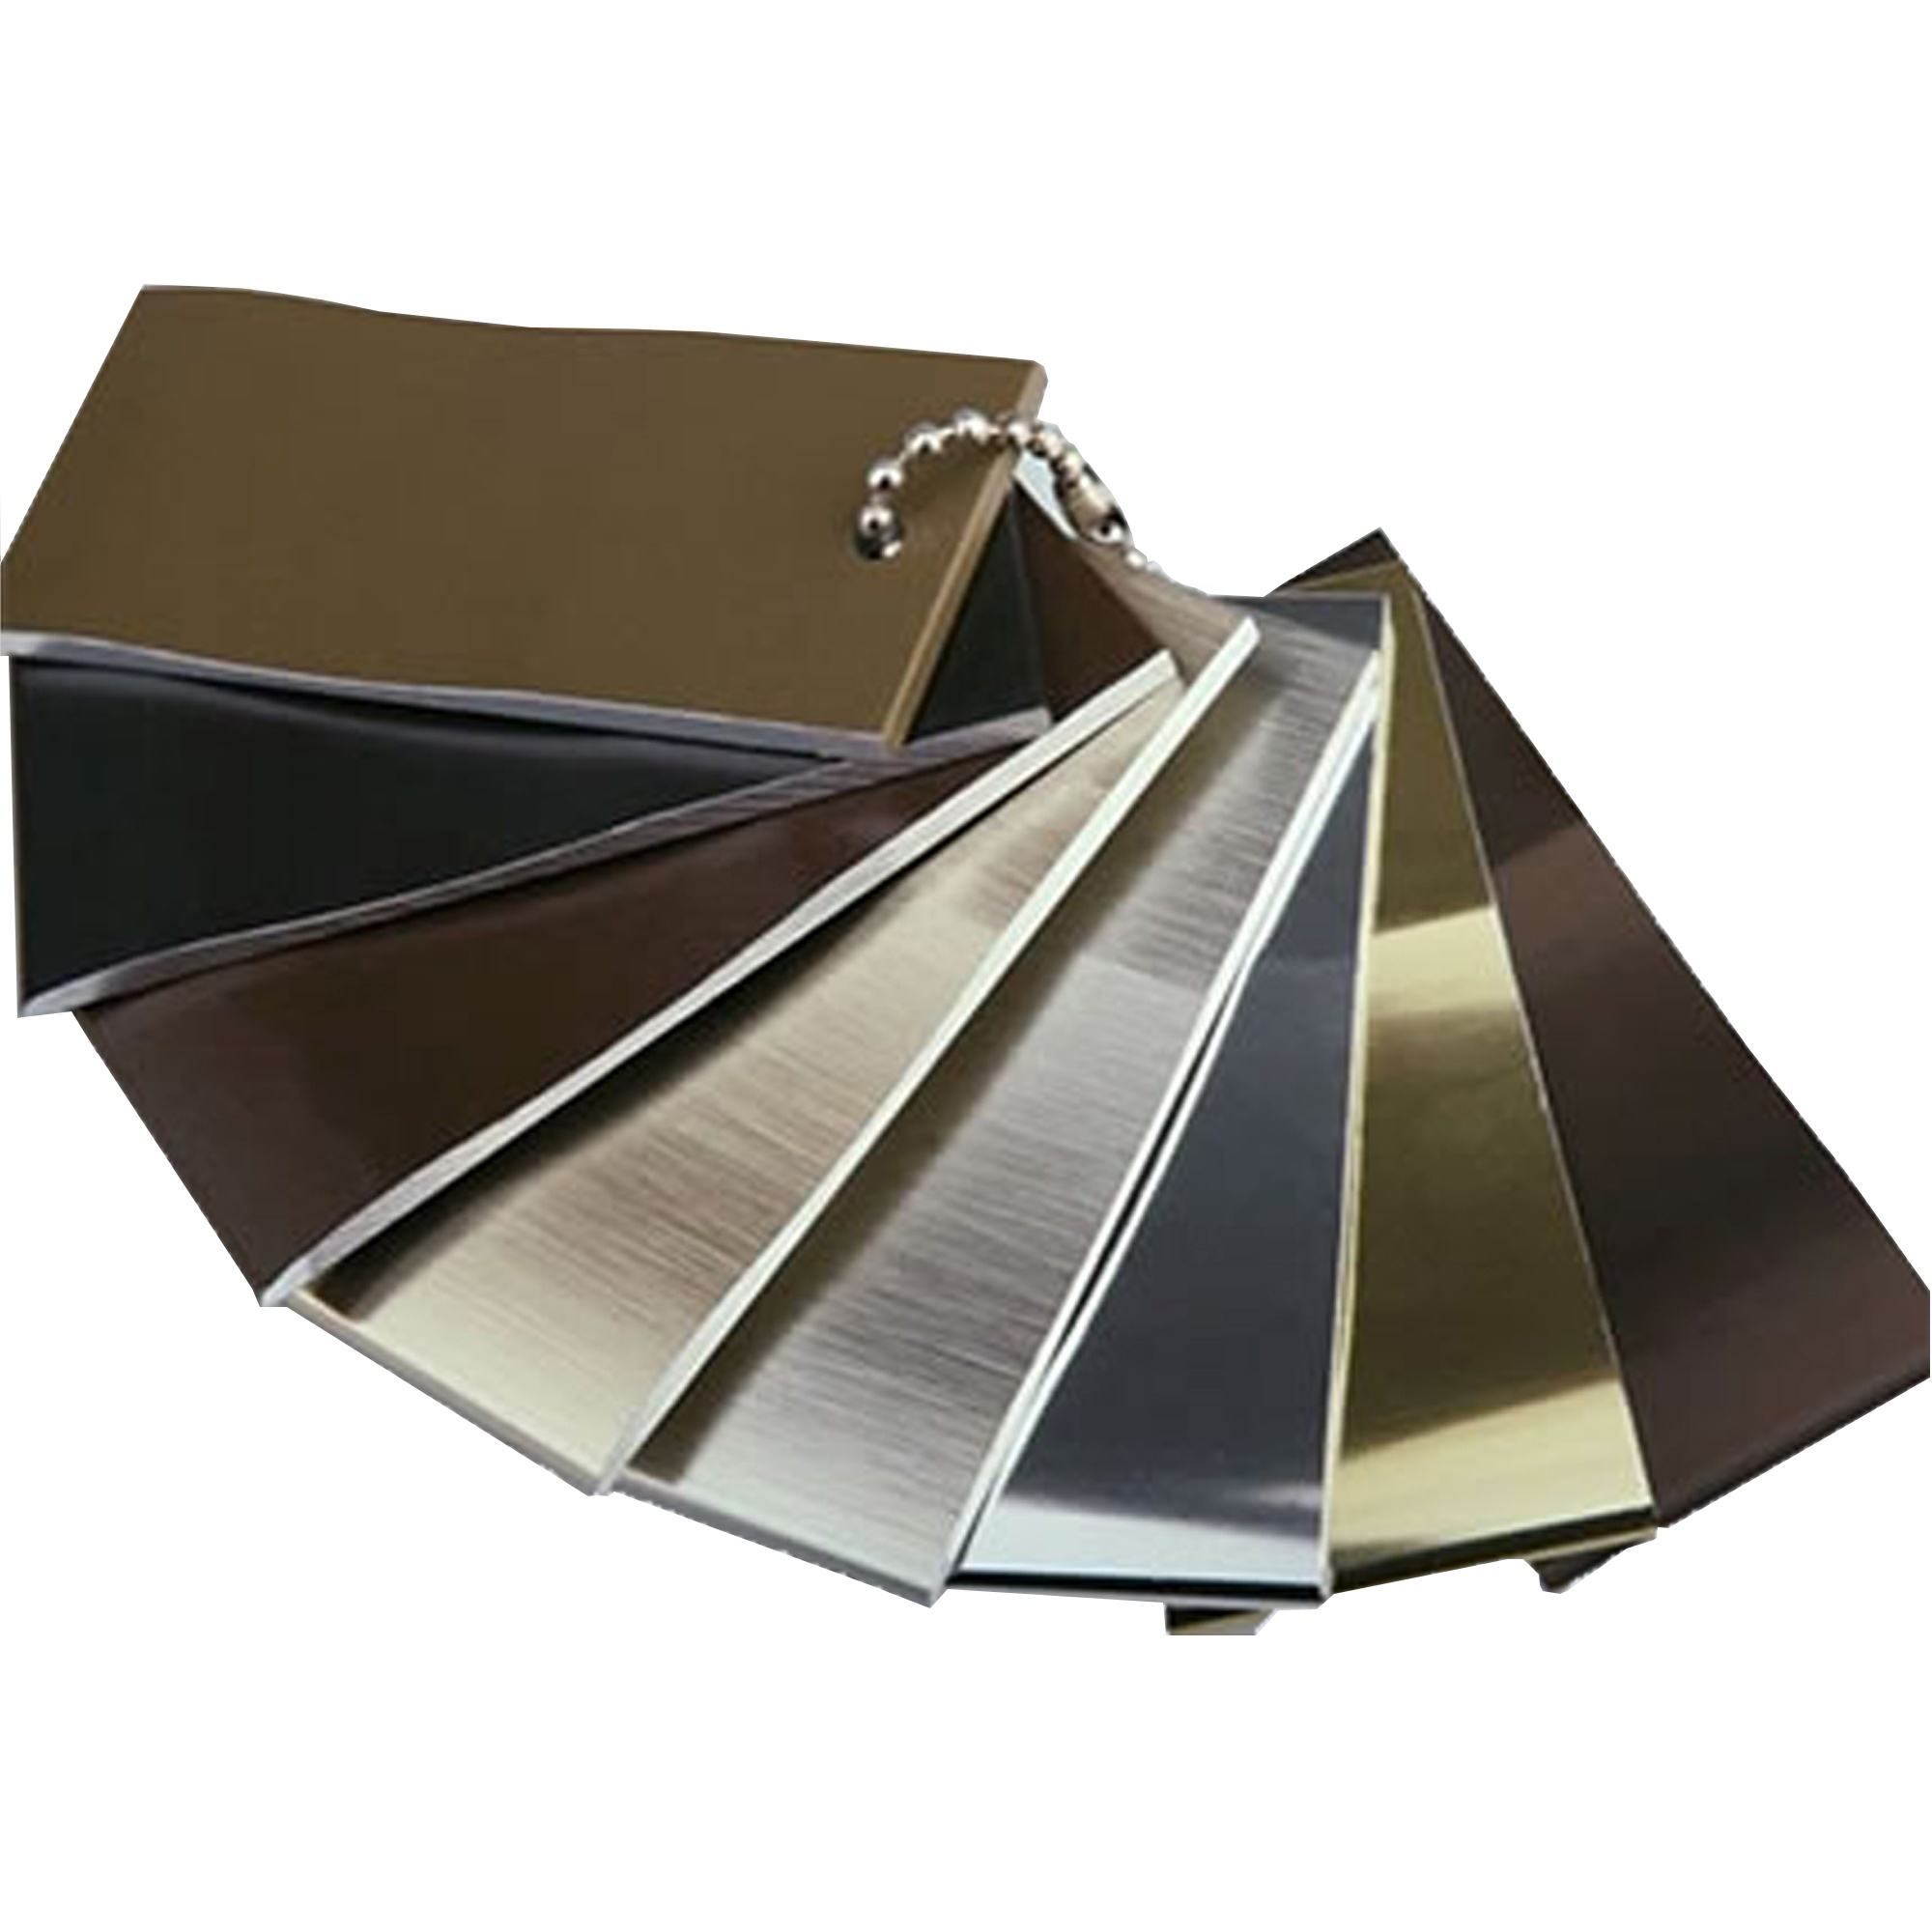 Satin Anodised Aluminium Sheets Are Available From Stock 15-year Warranty Aluminum Cladding Panels Anodized Aluminium Sheet